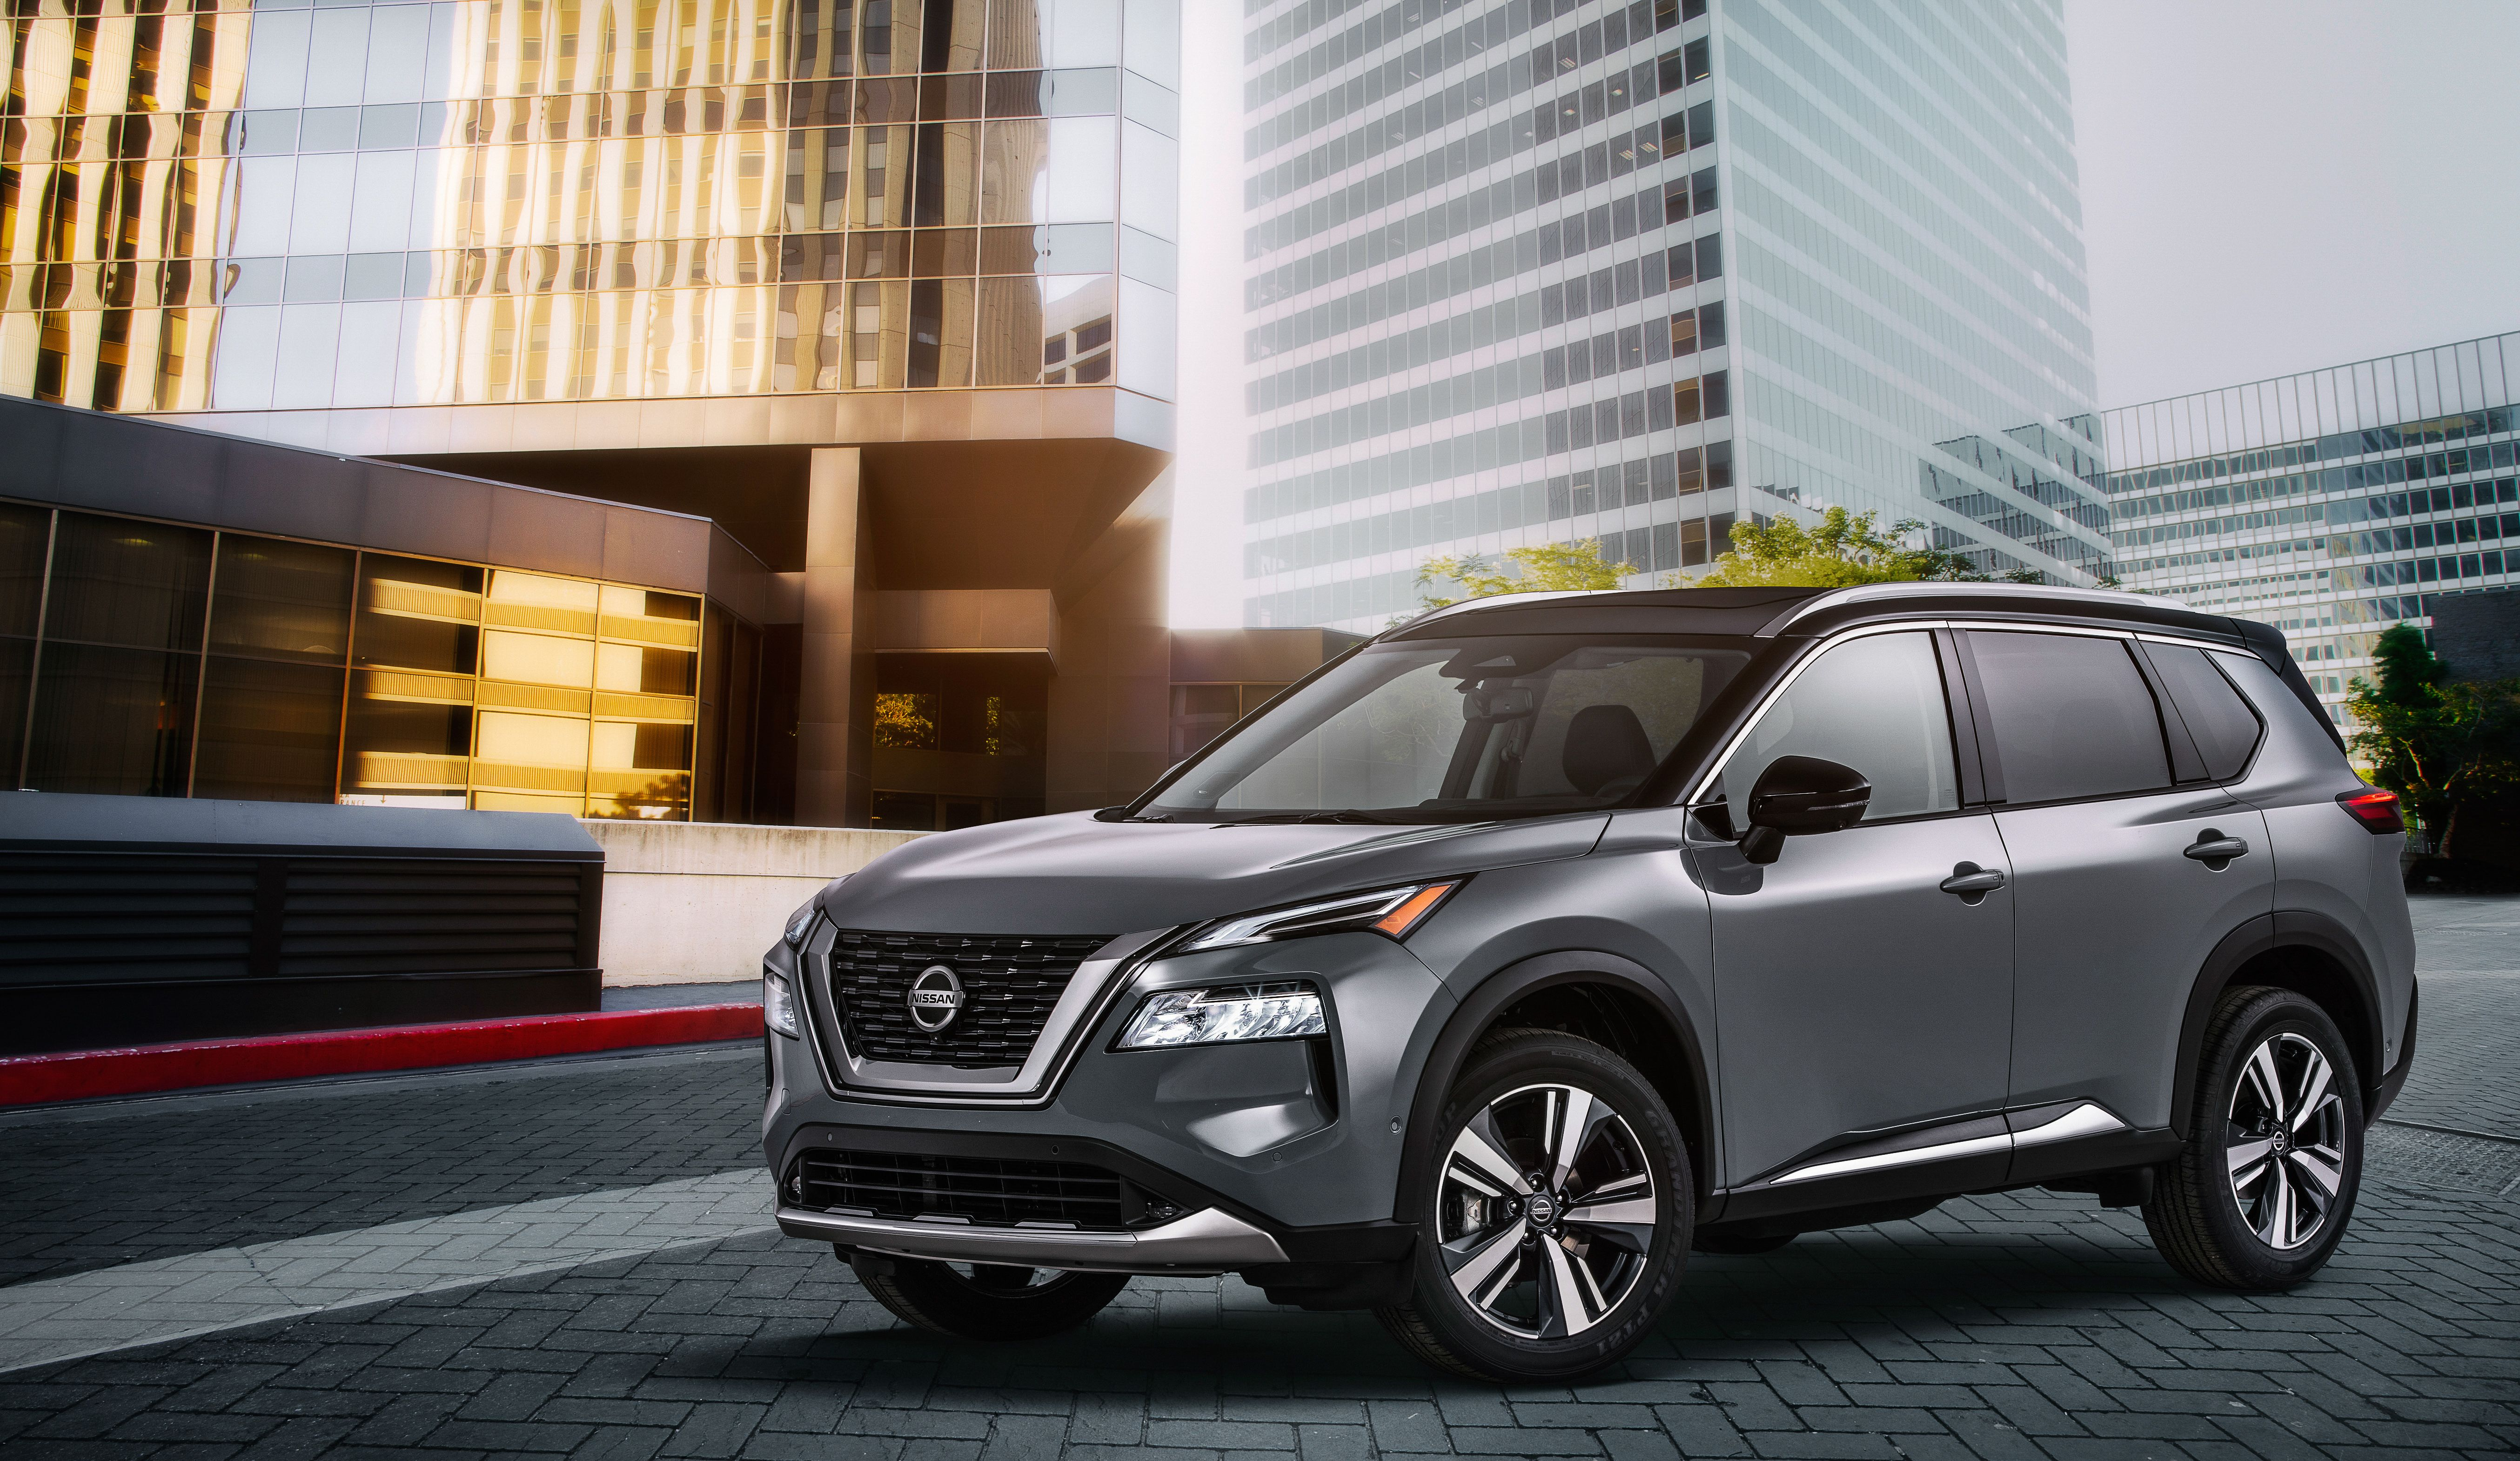 2021 Nissan Rogue Juke Like Exterior Dna Impressive Interior Subpar Performance Top Speed In 2020 Nissan Rogue Nissan Nissan Rogue Interior